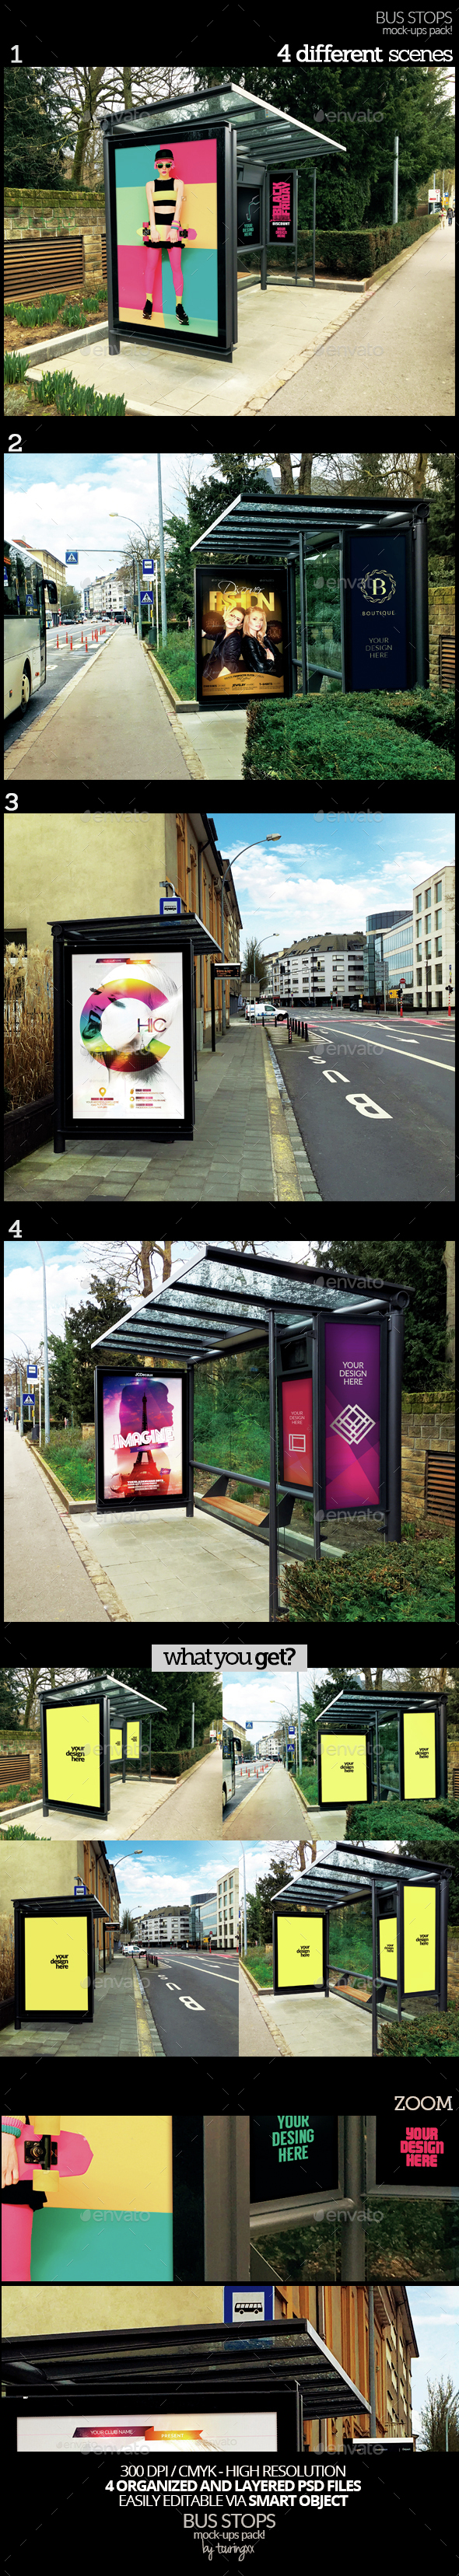 Bus Stops Mock-Ups Pack - Product Mock-Ups Graphics